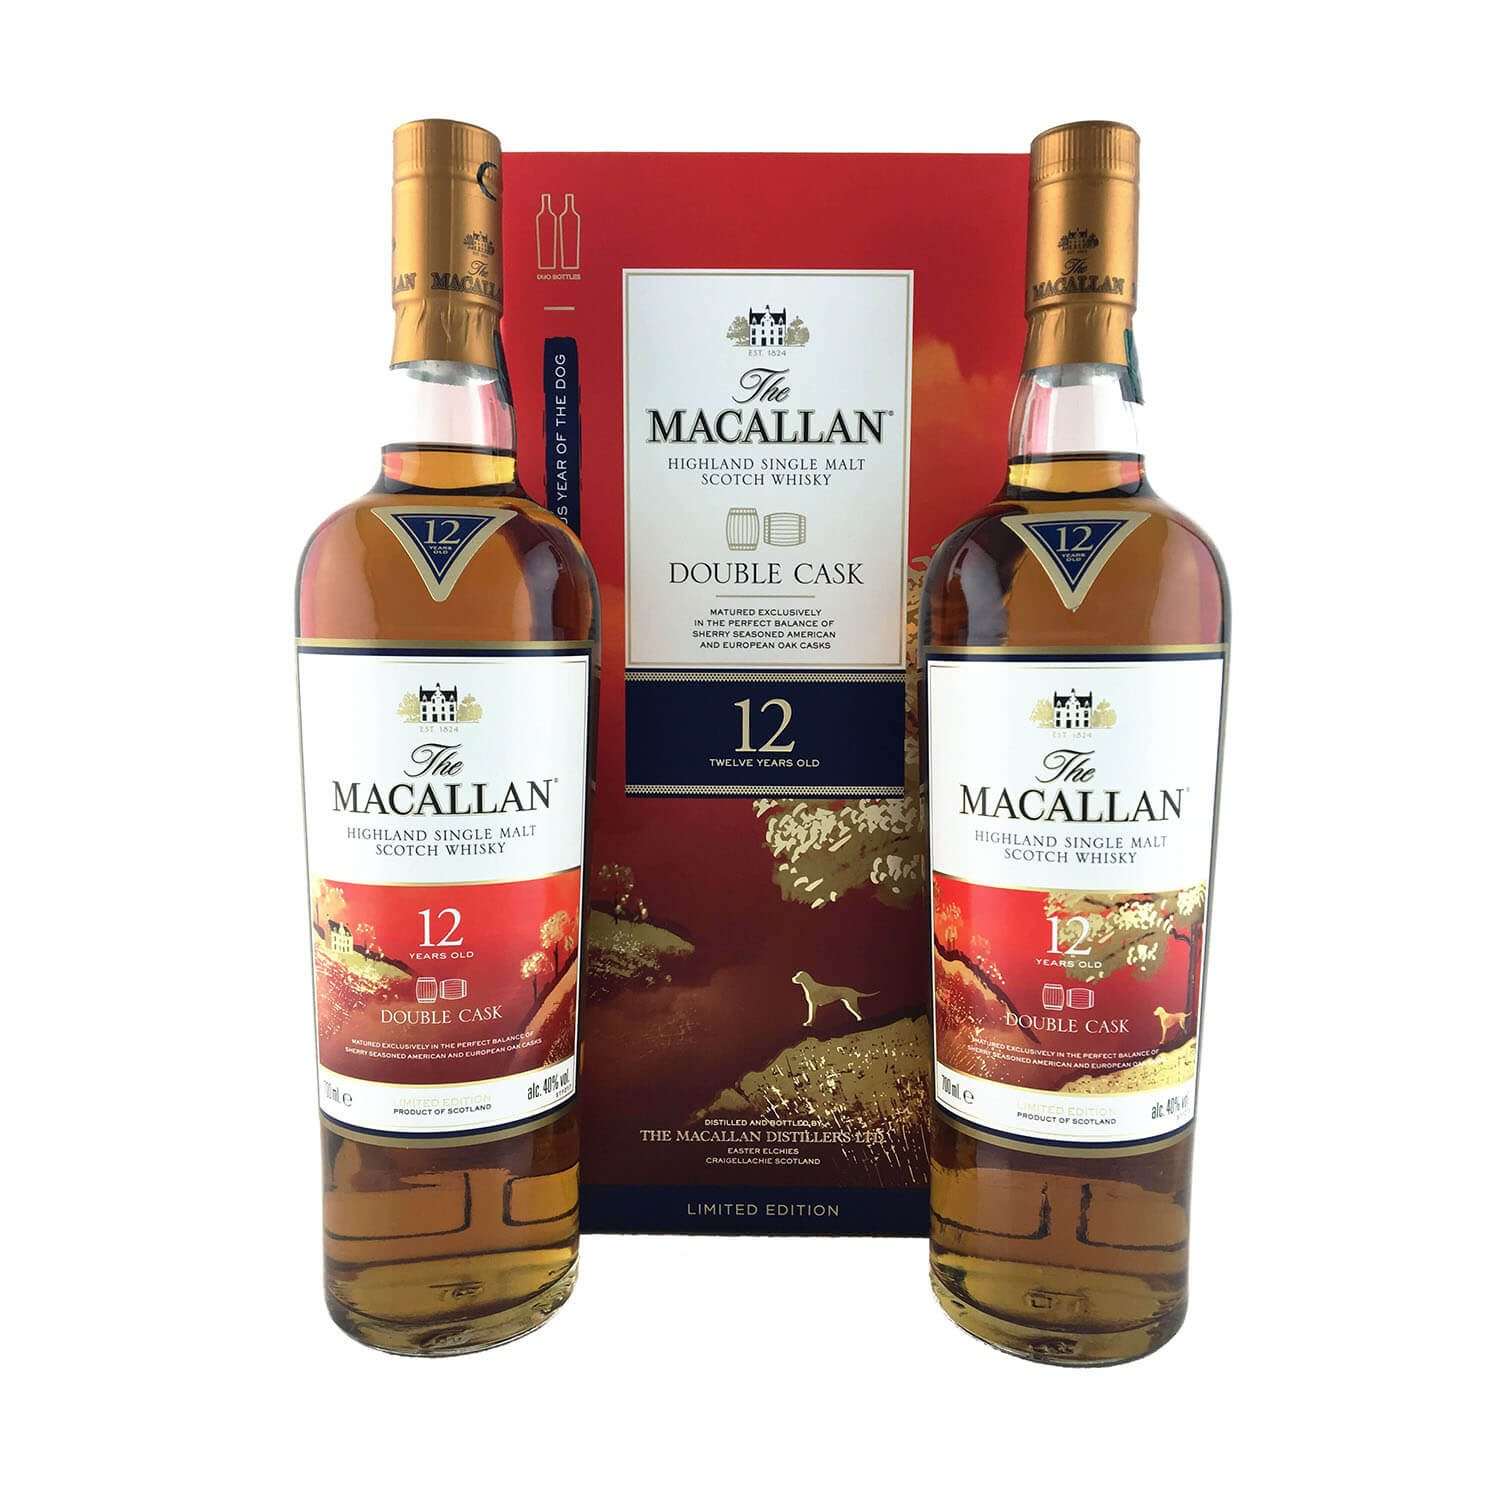 0f797021522 The Macallan 12 Year Old Double Cask Chinese New Year 2018 – 2 x 700ml 40%  Limited edition 2 x 700ml twin pack release celebrating the Chinese New Year